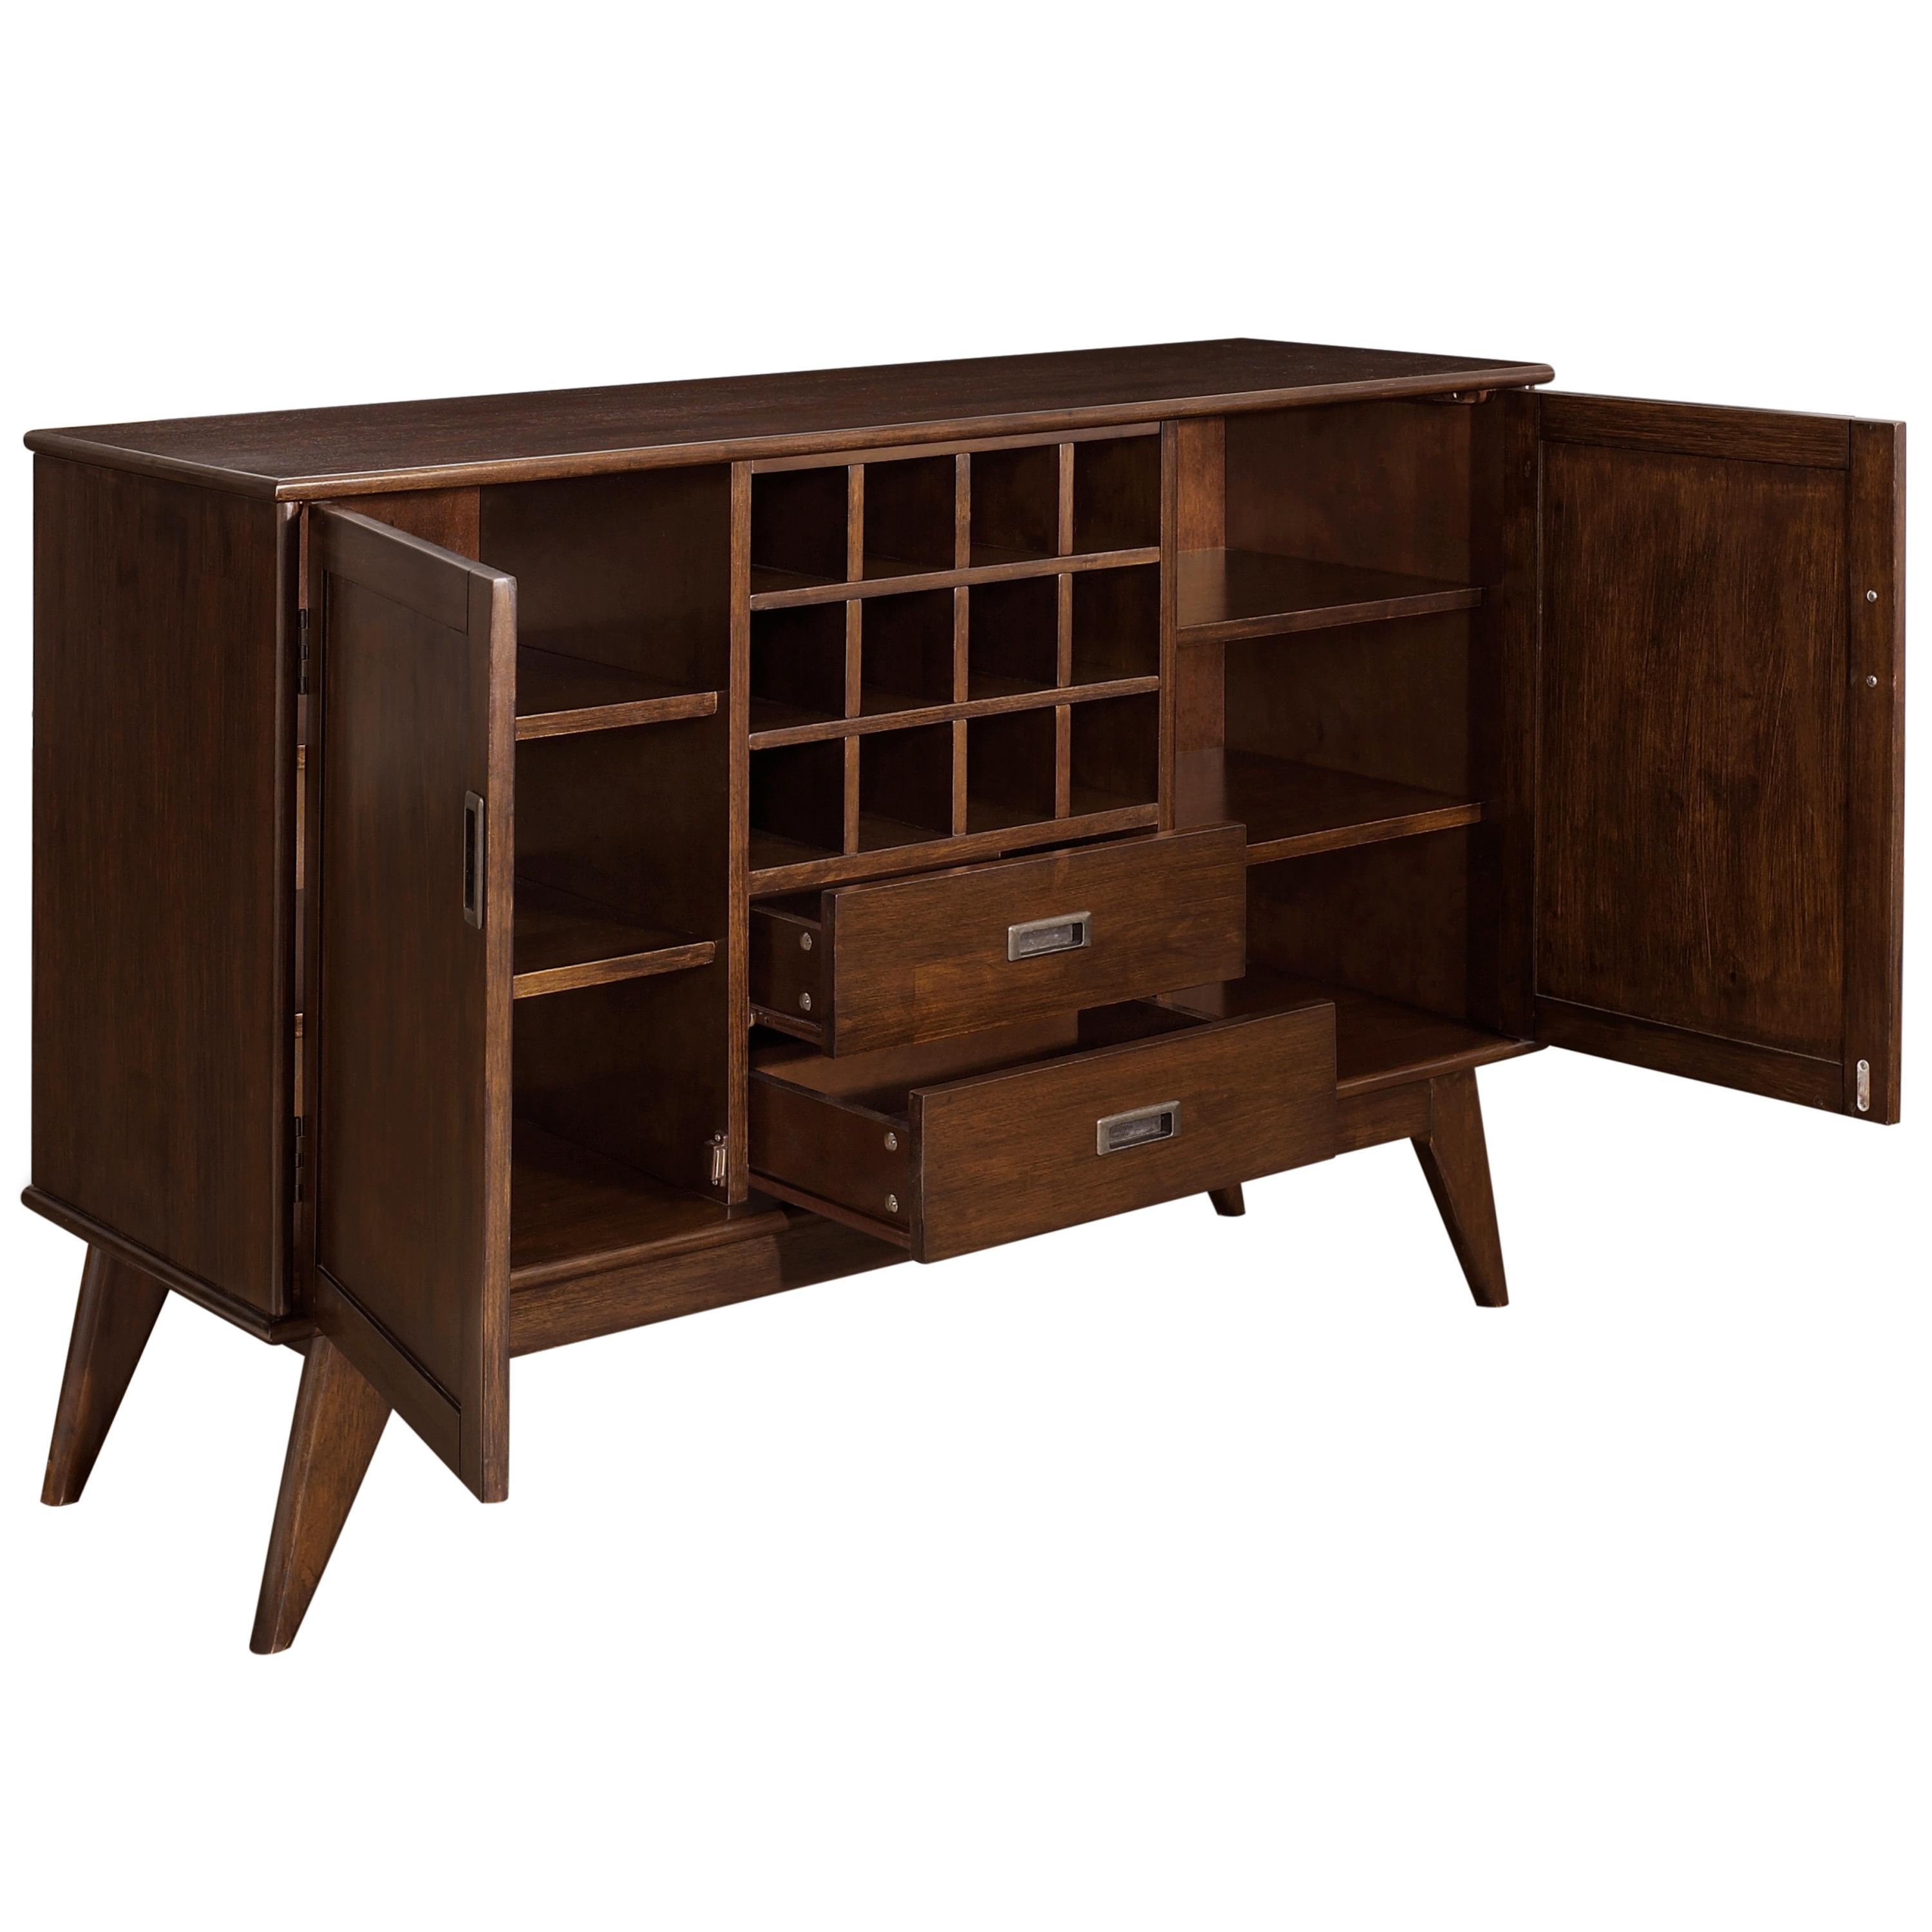 simpli home draper mid century sideboard. Black Bedroom Furniture Sets. Home Design Ideas